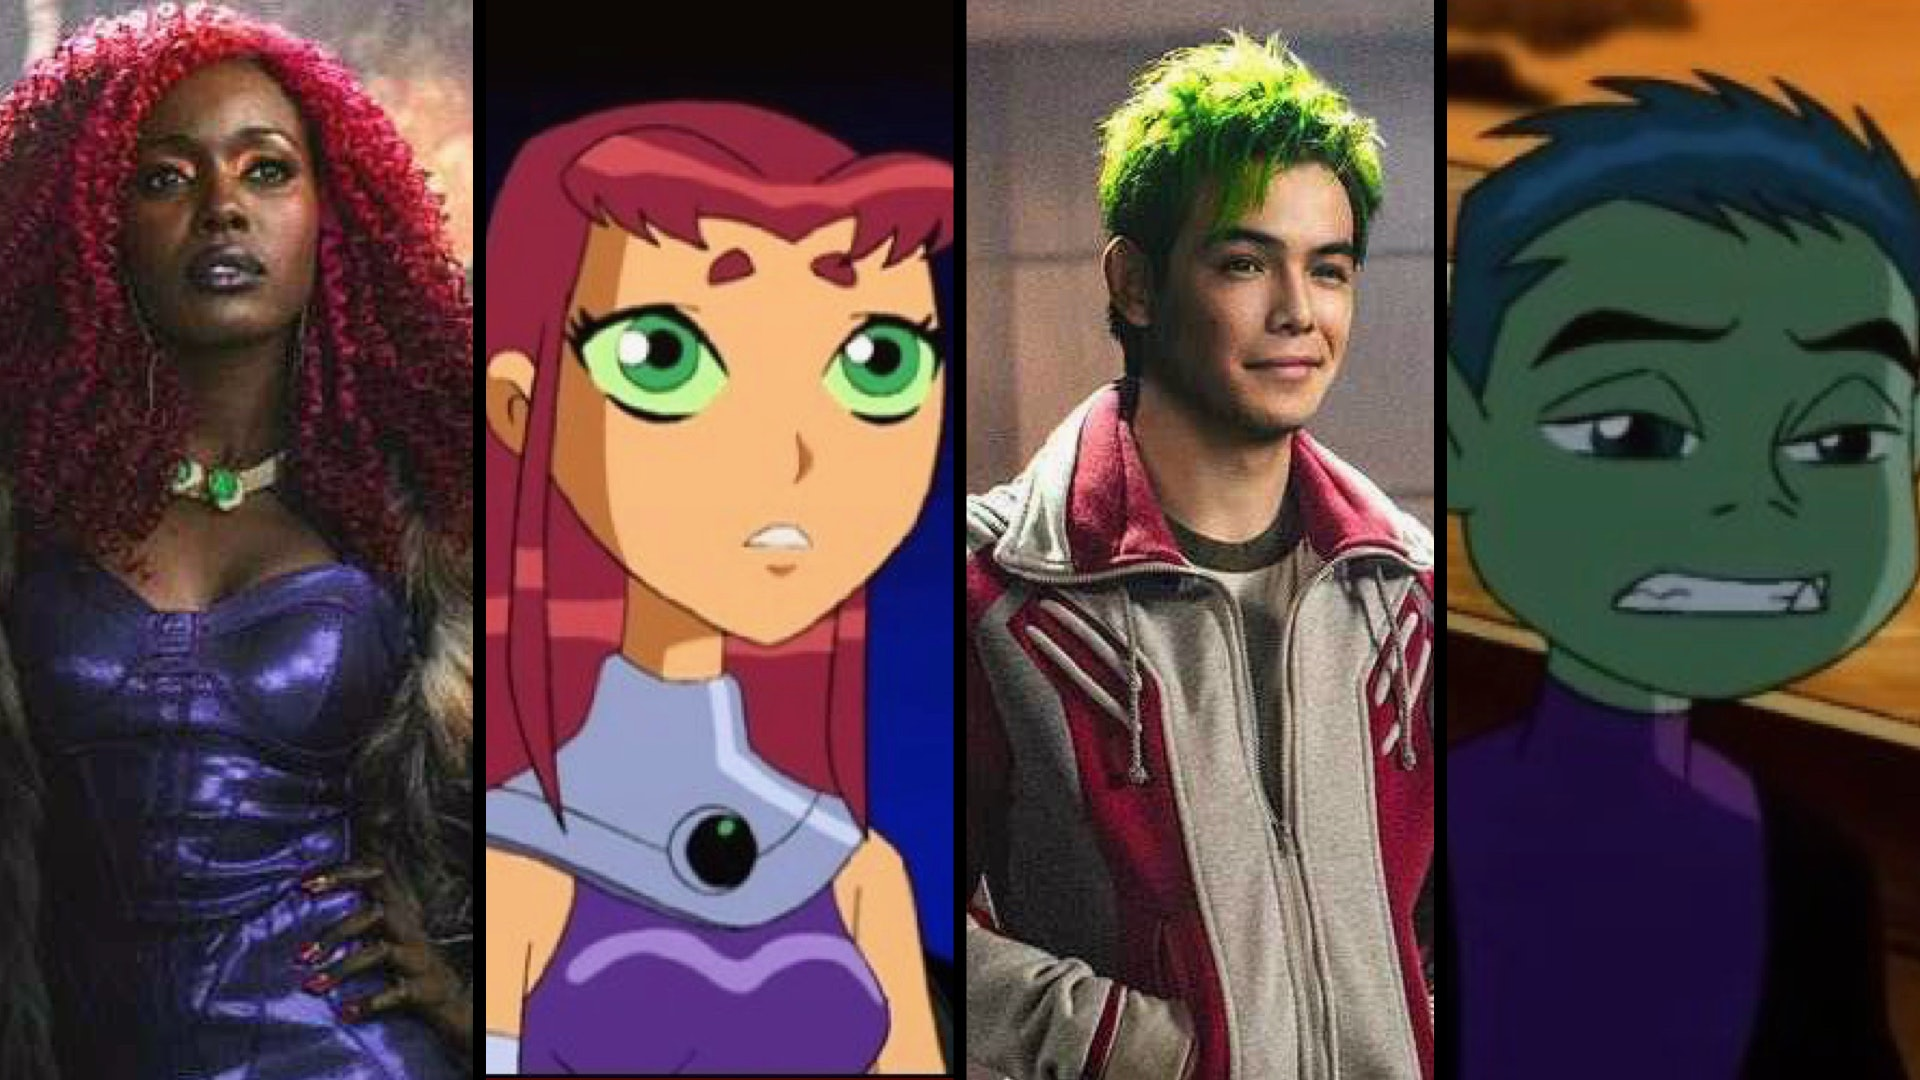 On Titans People Of Color Play Orange And Green Characters Of